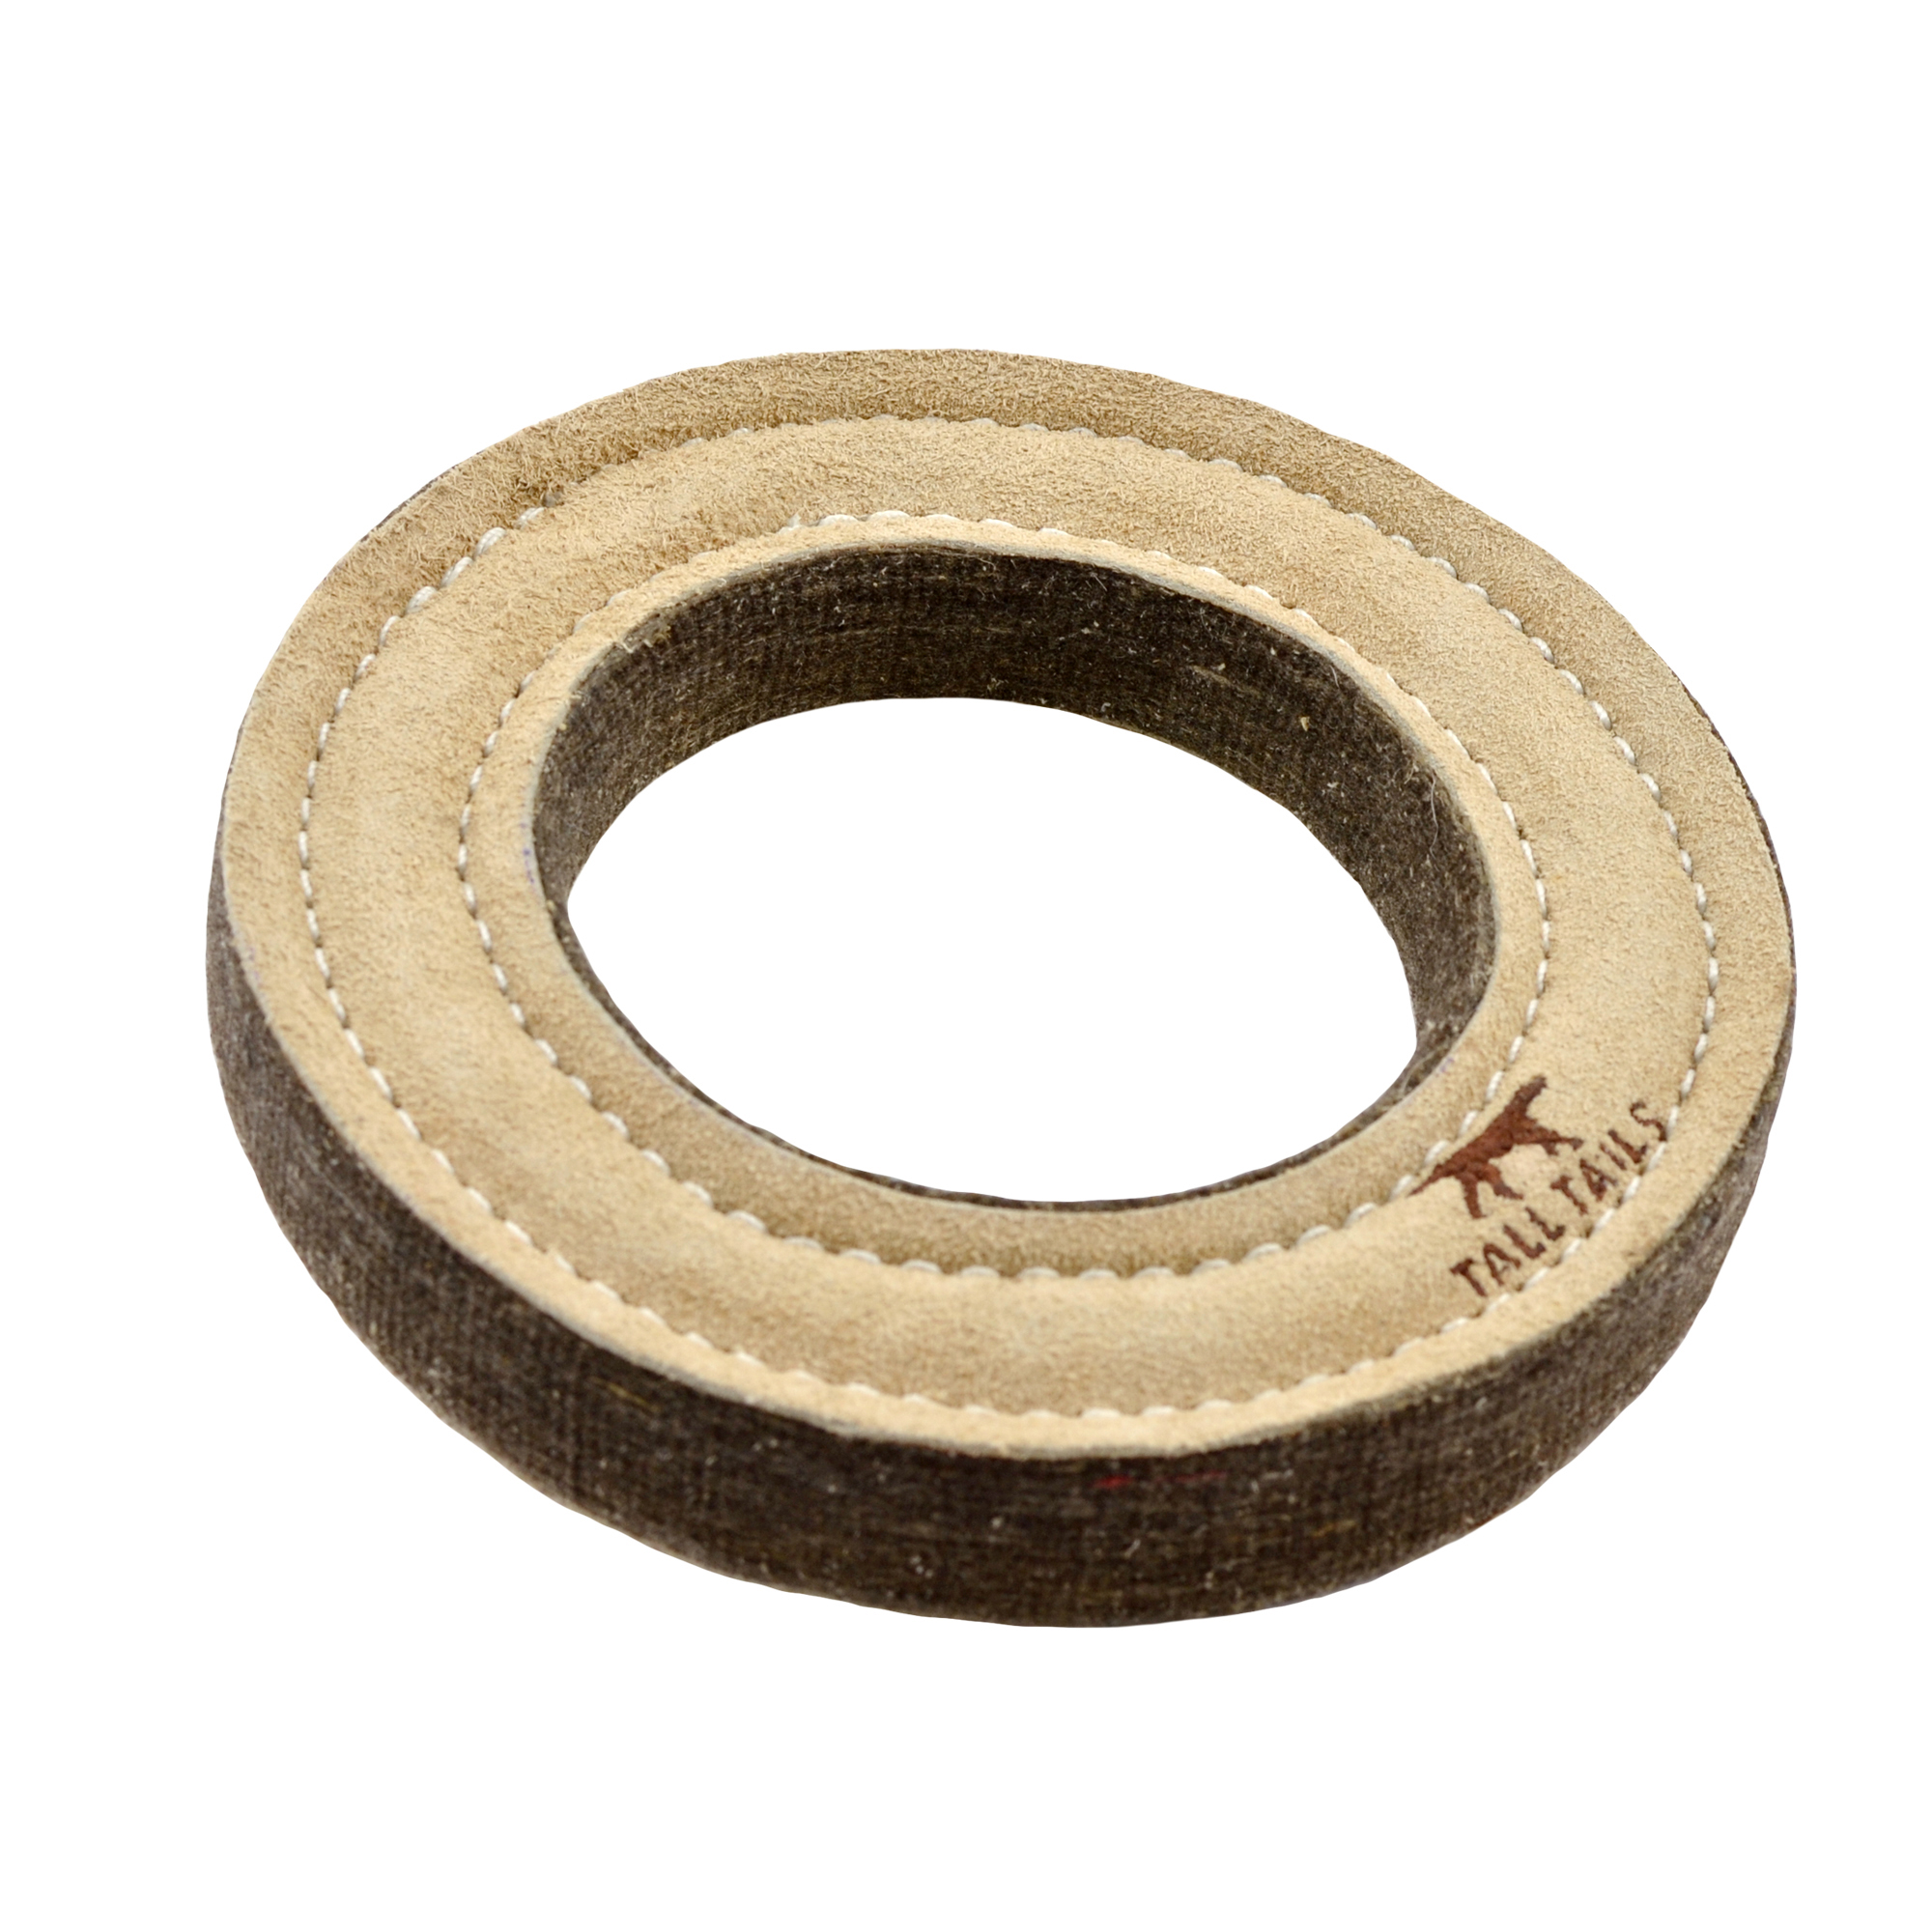 Tall Tails Natural Leather Ring Dog Toy, 7-in